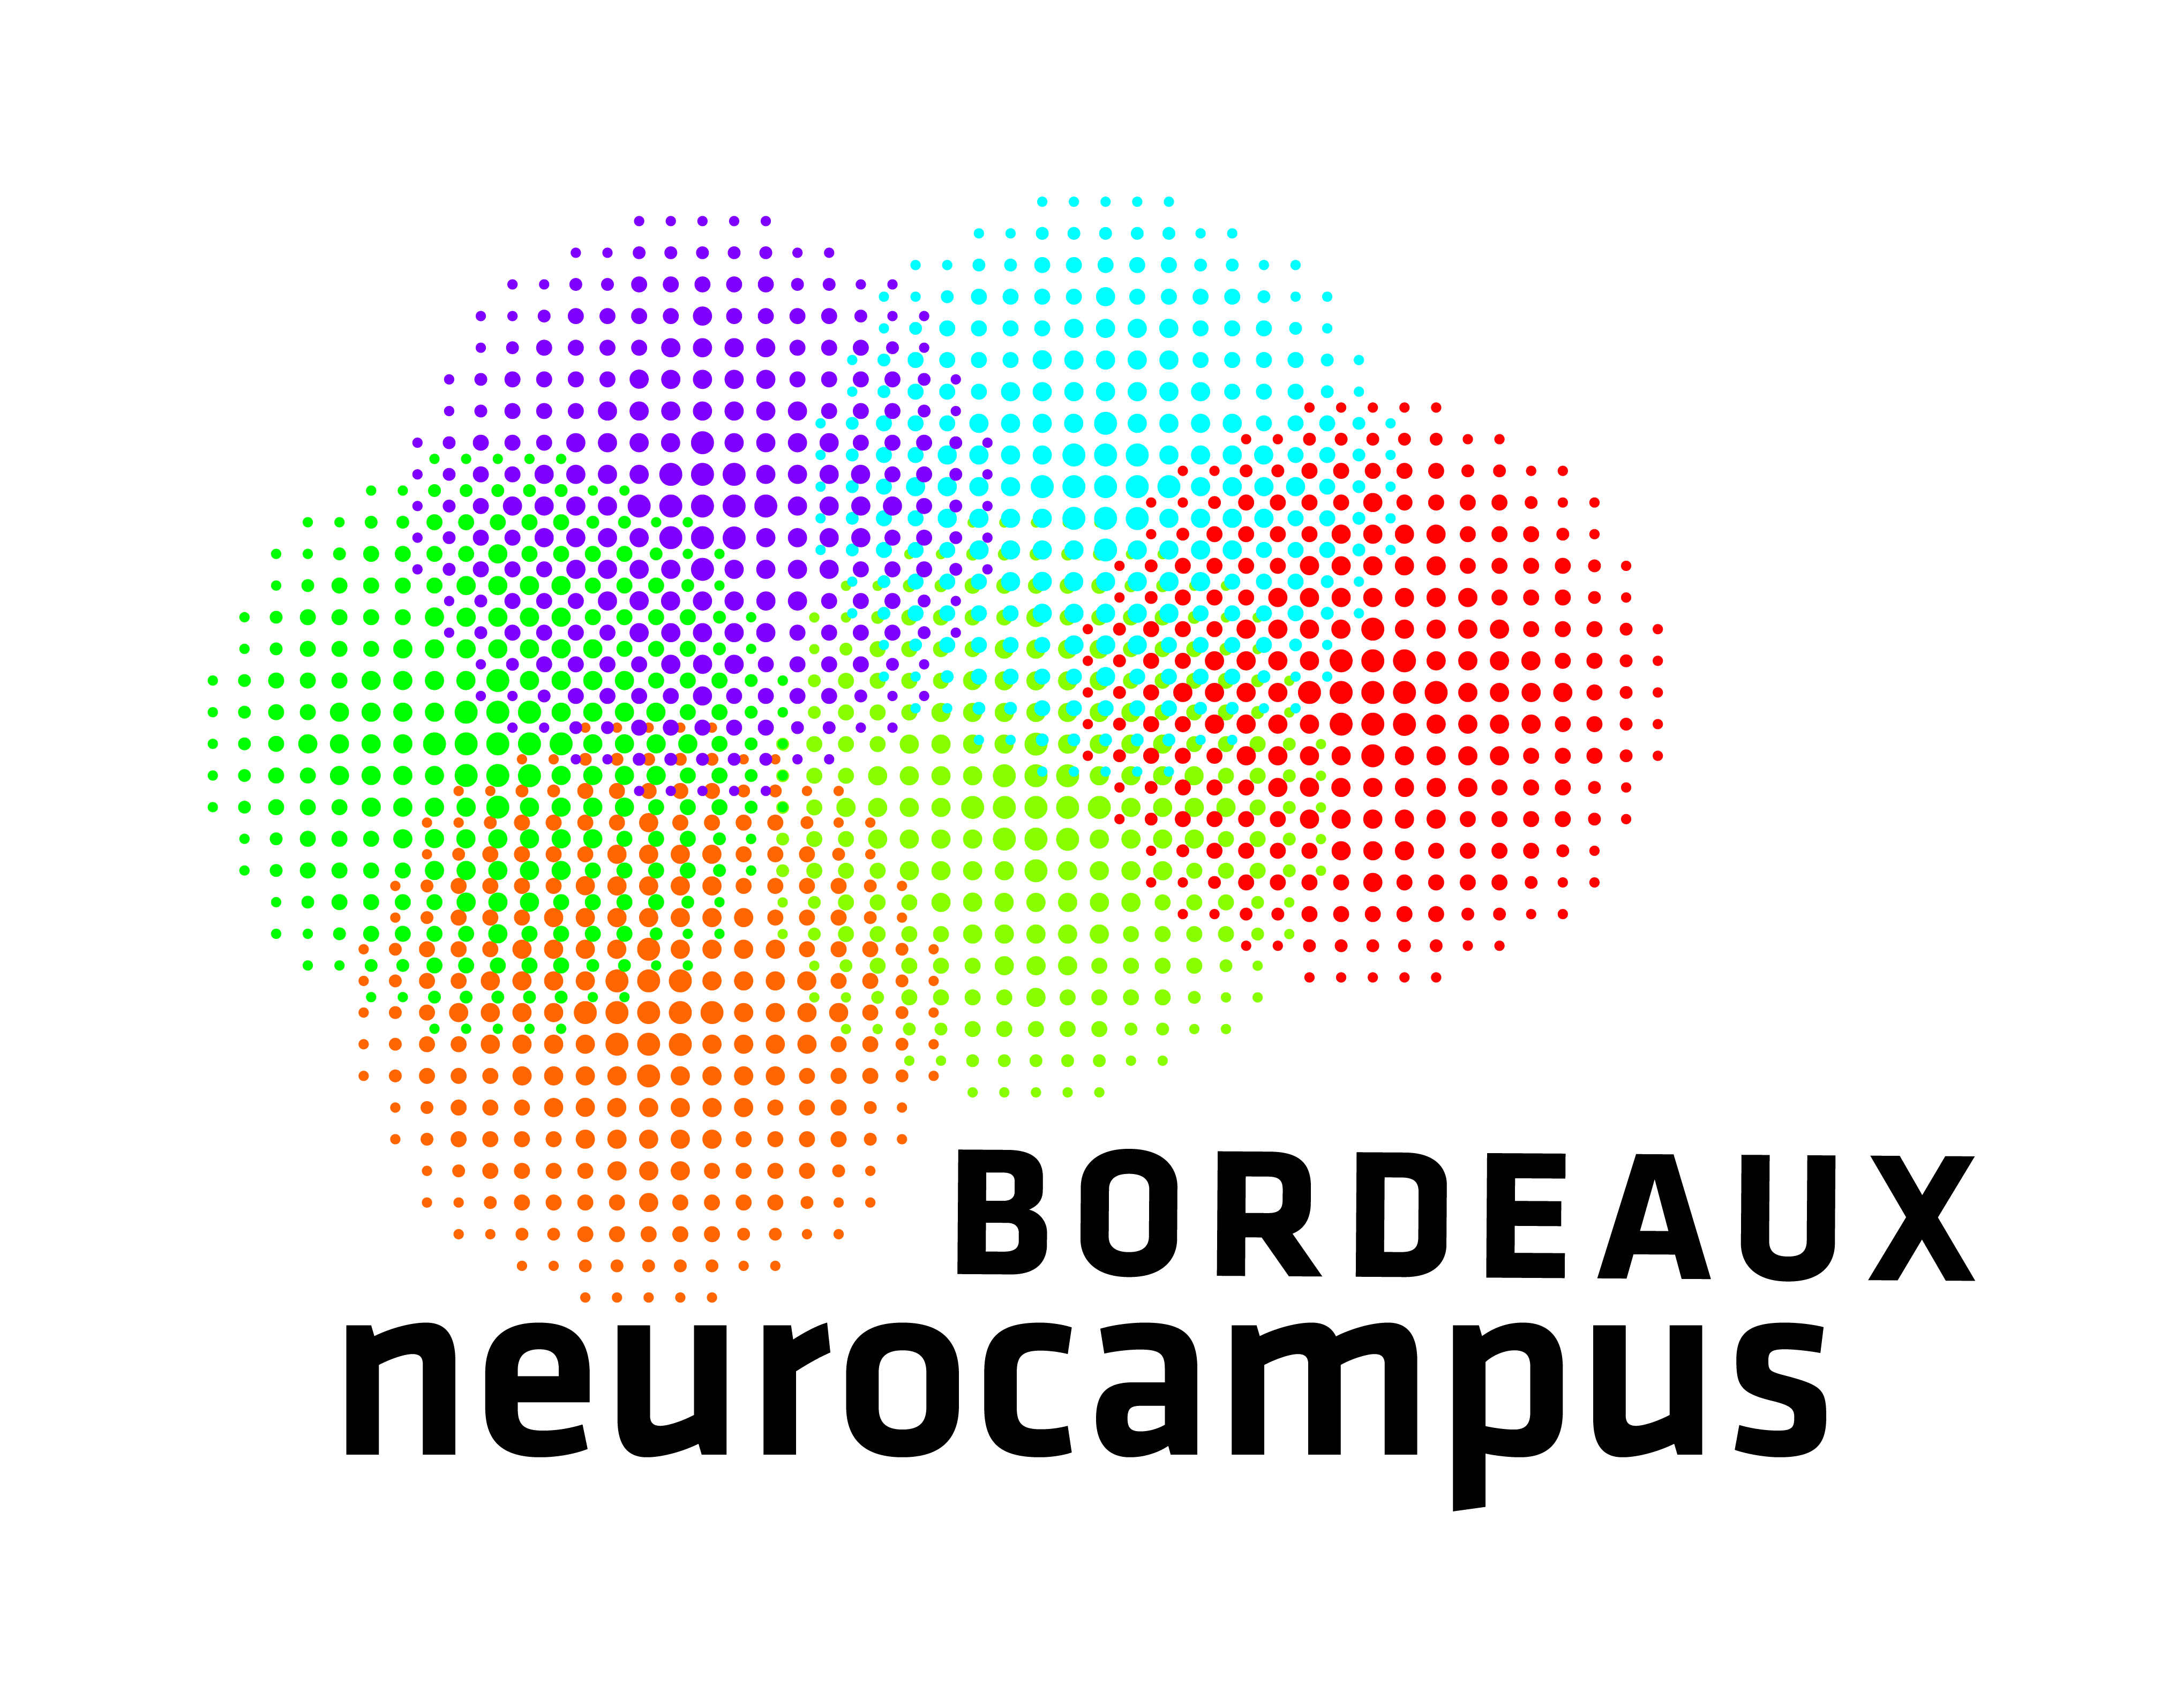 Bordeaux Neurocampus